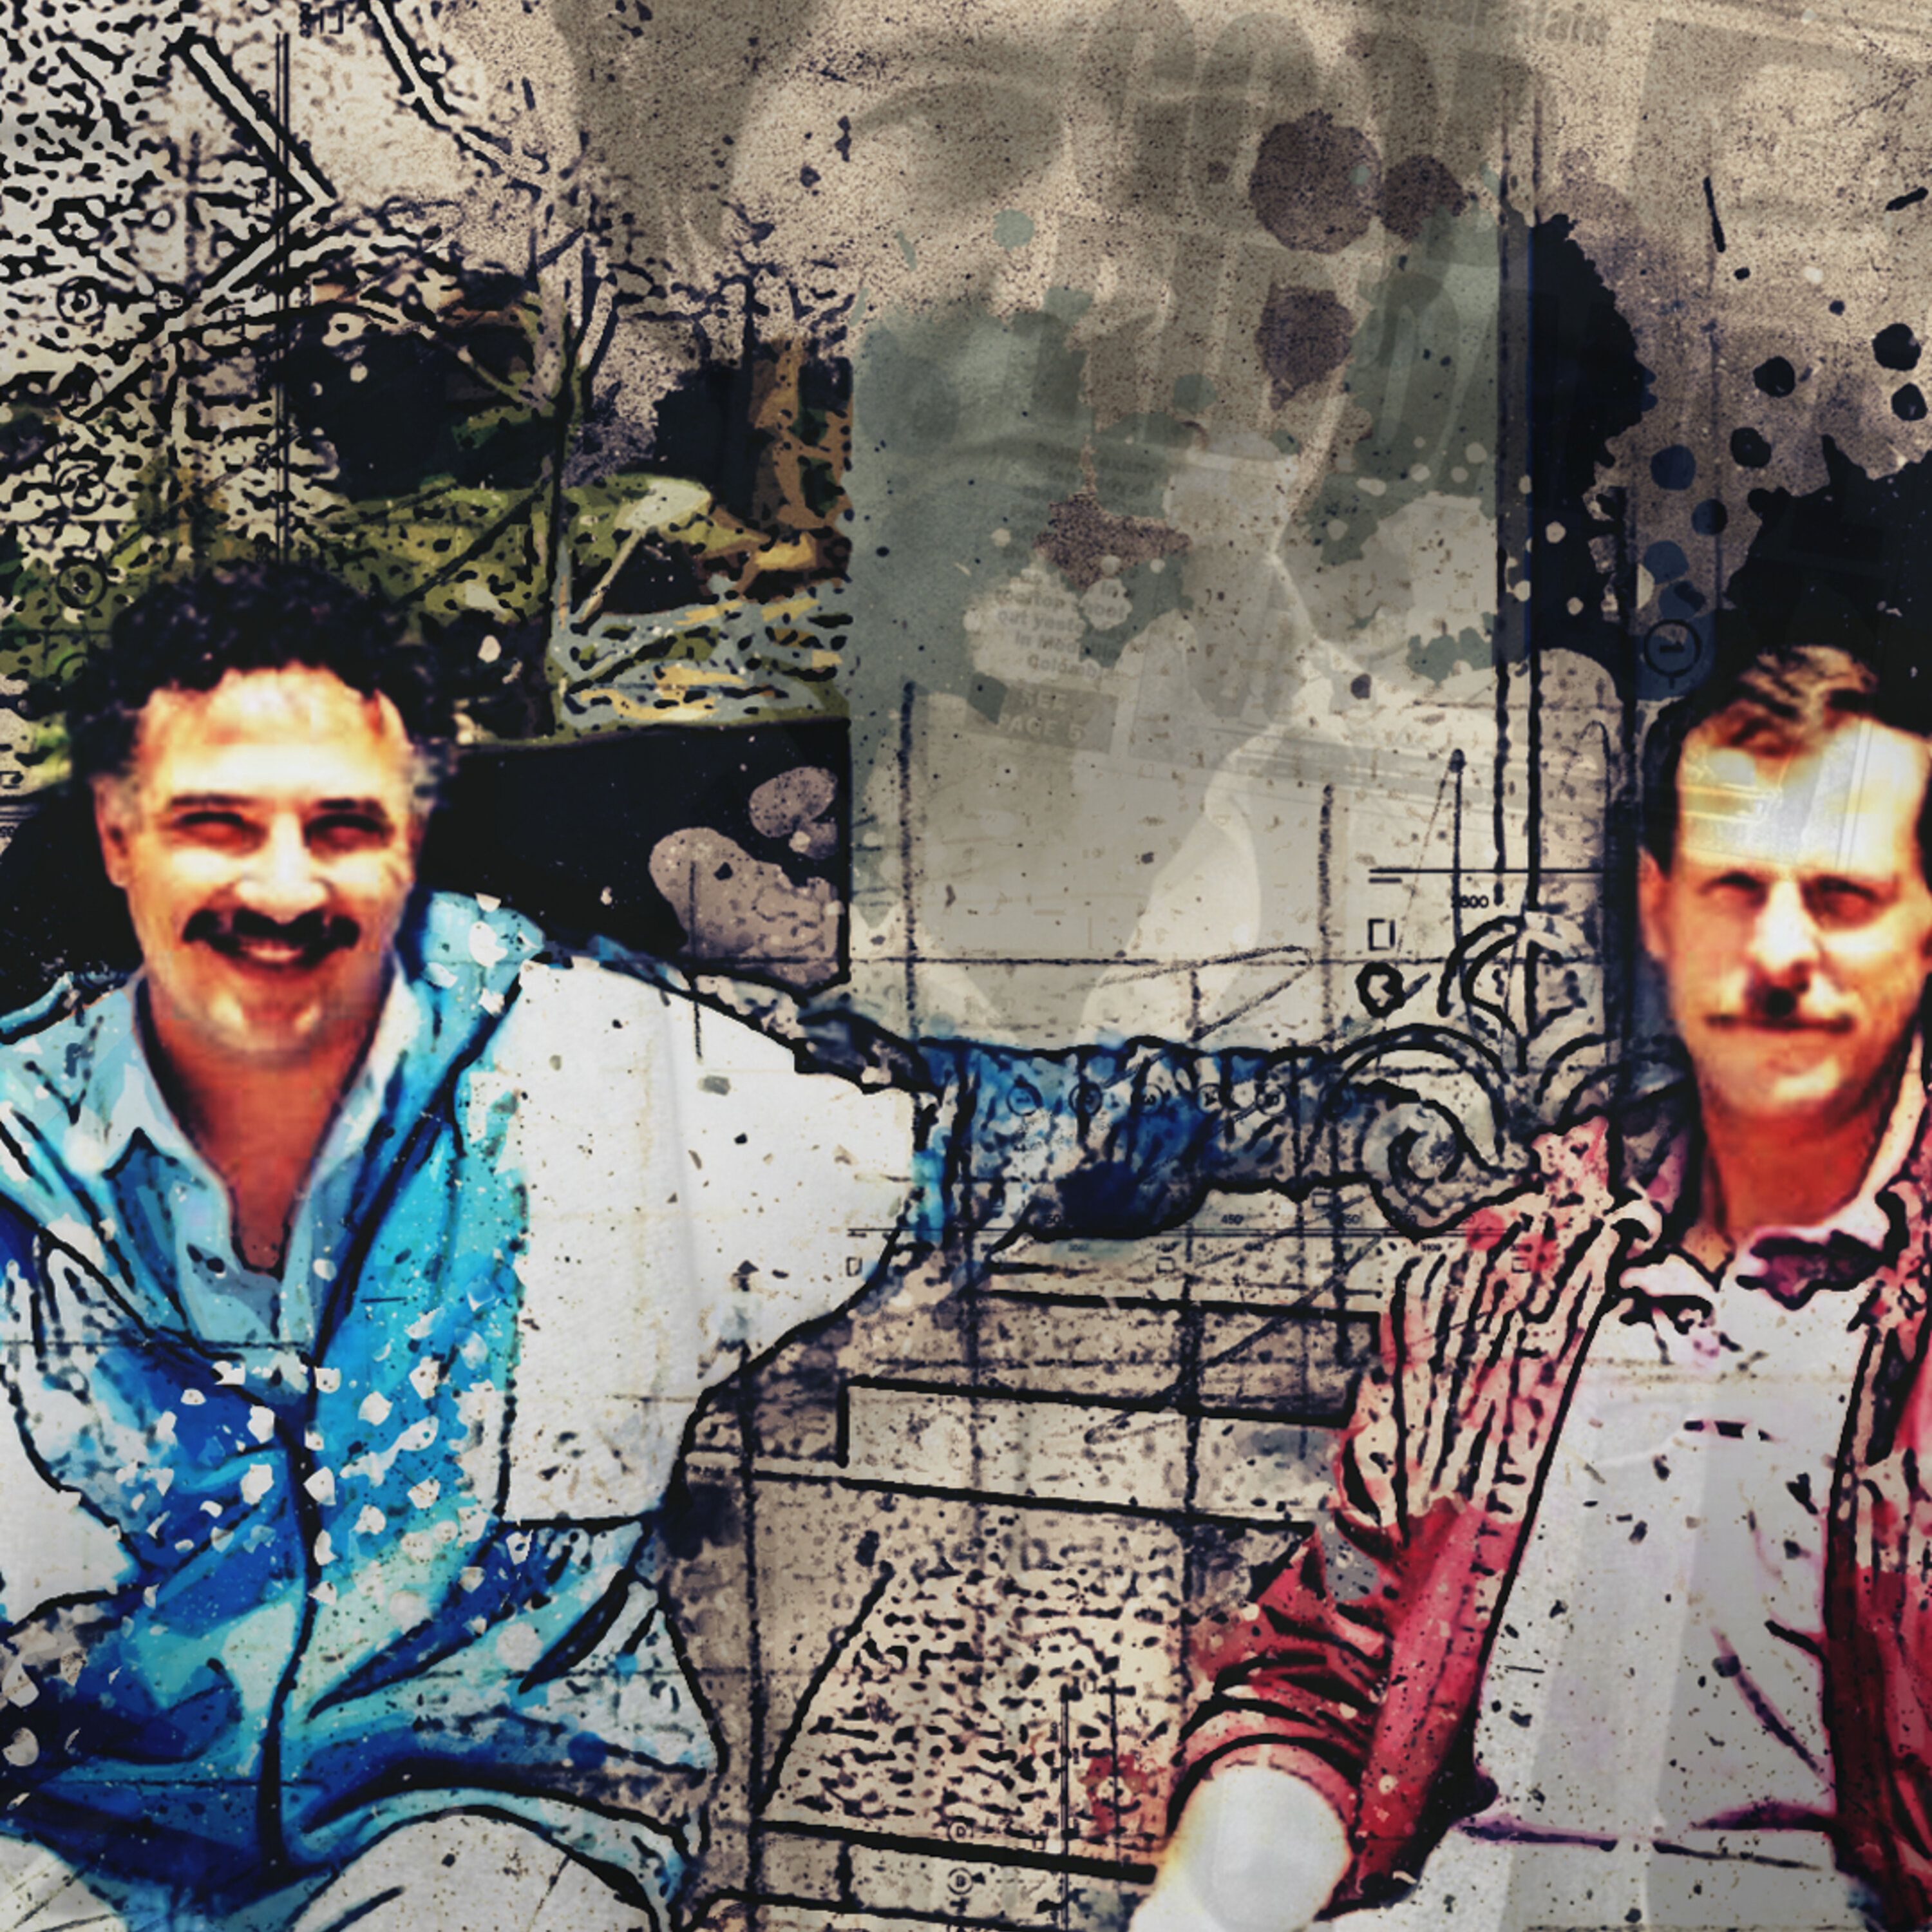 Steve Murphy and Javier F. Peña: Legendary DEA Operatives Responsible for Taking Down One of the World's Most Infamous Narco-Terrorists Pablo Escobar